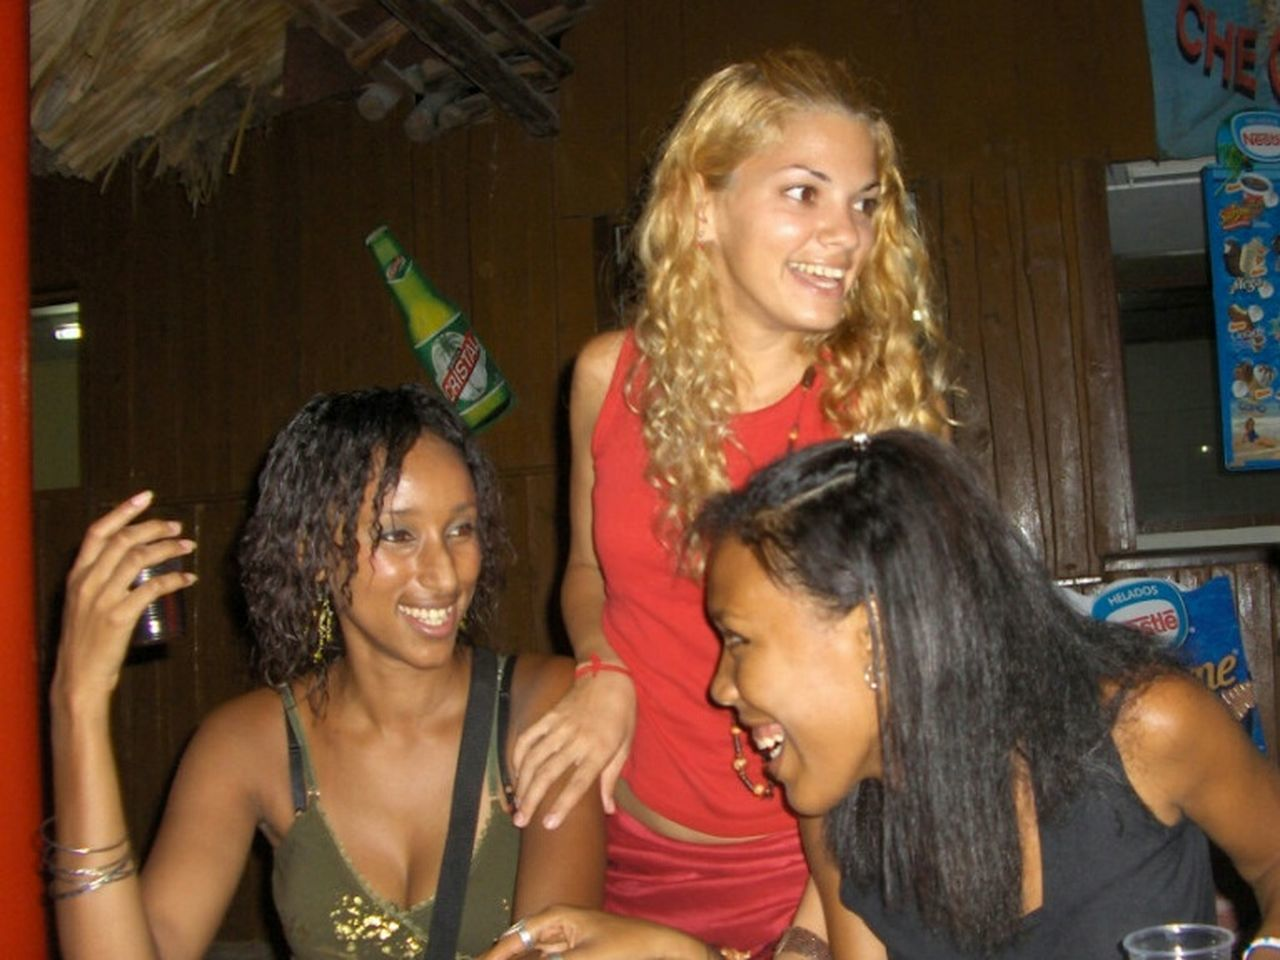 smiling, happiness, fun, cheerful, celebration, nightlife, enjoyment, night, indoors, laughing, adults only, party - social event, young adult, friendship, togetherness, long hair, young women, nightclub, people, adult, standing, headshot, blond hair, beautiful woman, portrait, women, human body part, clubbing, happy hour